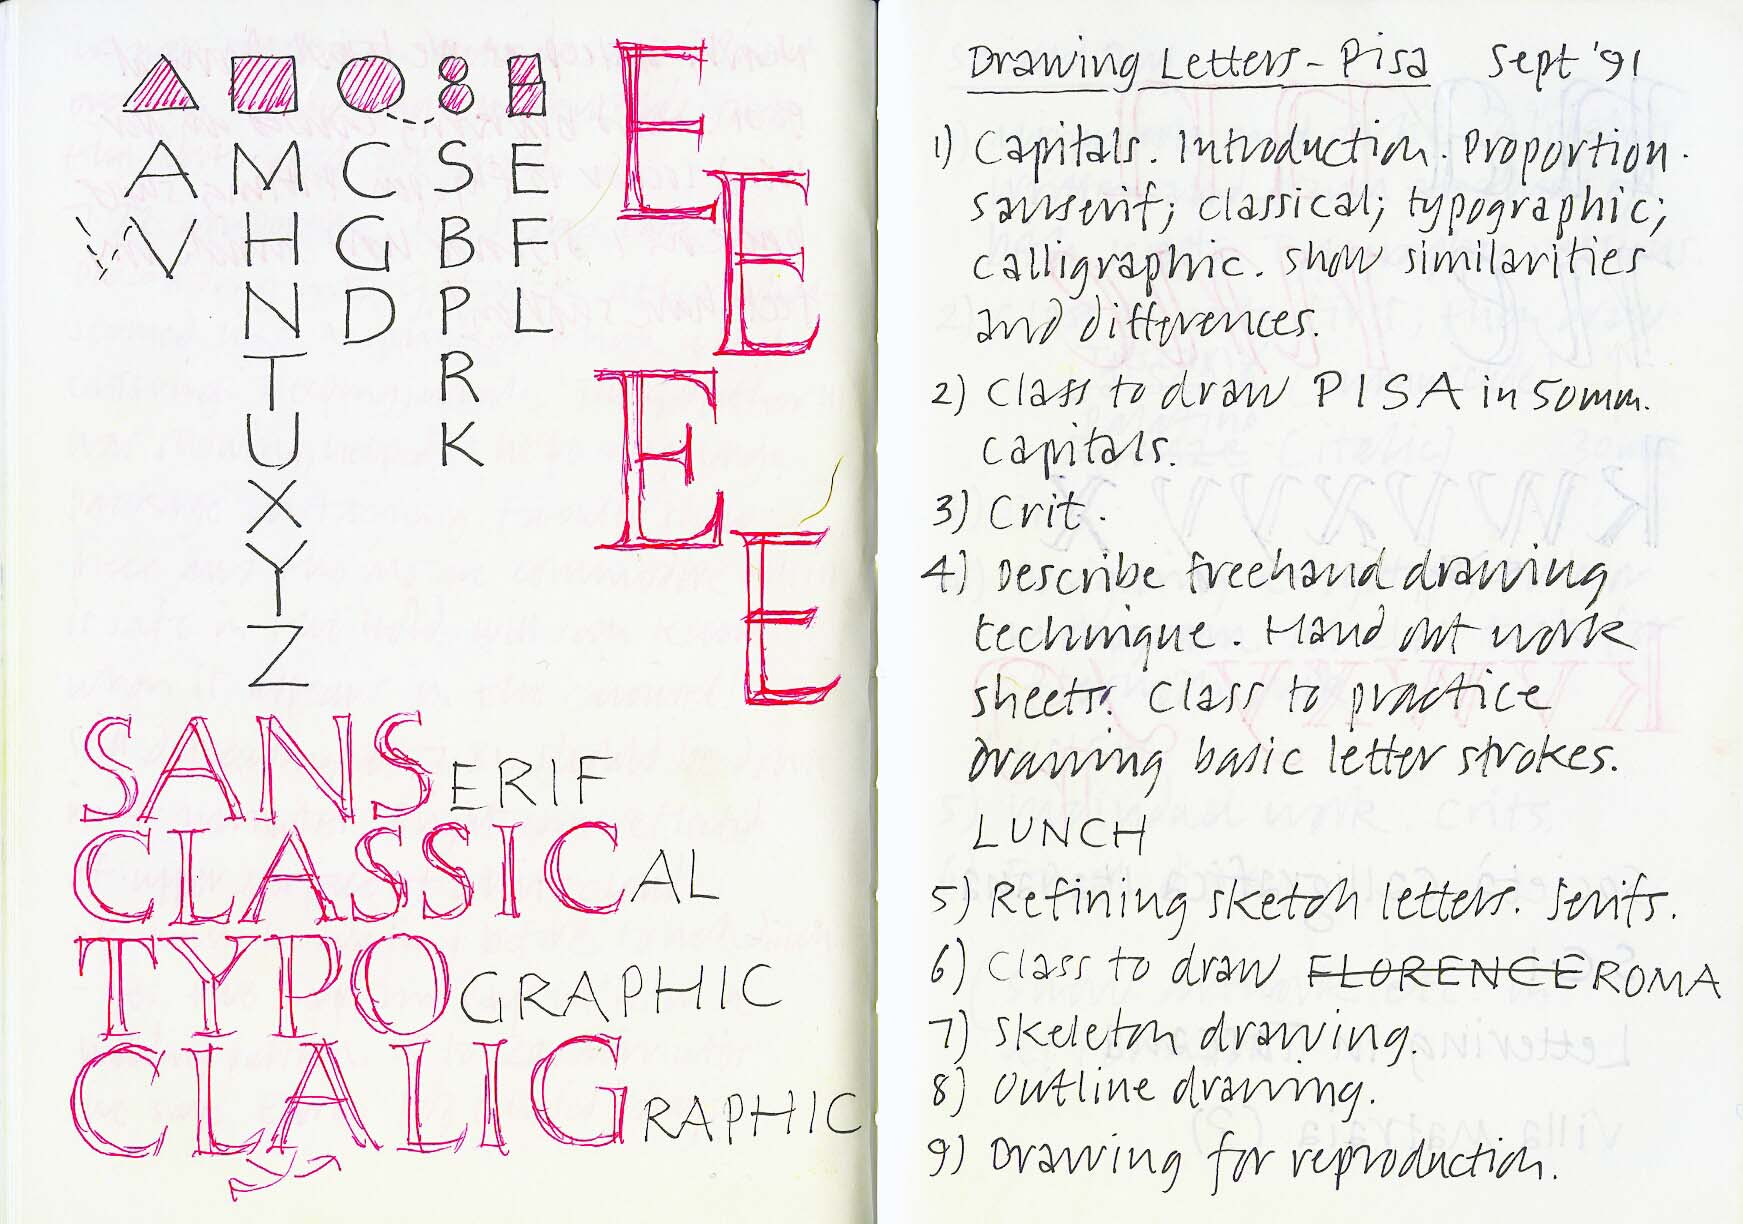 Pisa 1991 – Drawing Letters#1